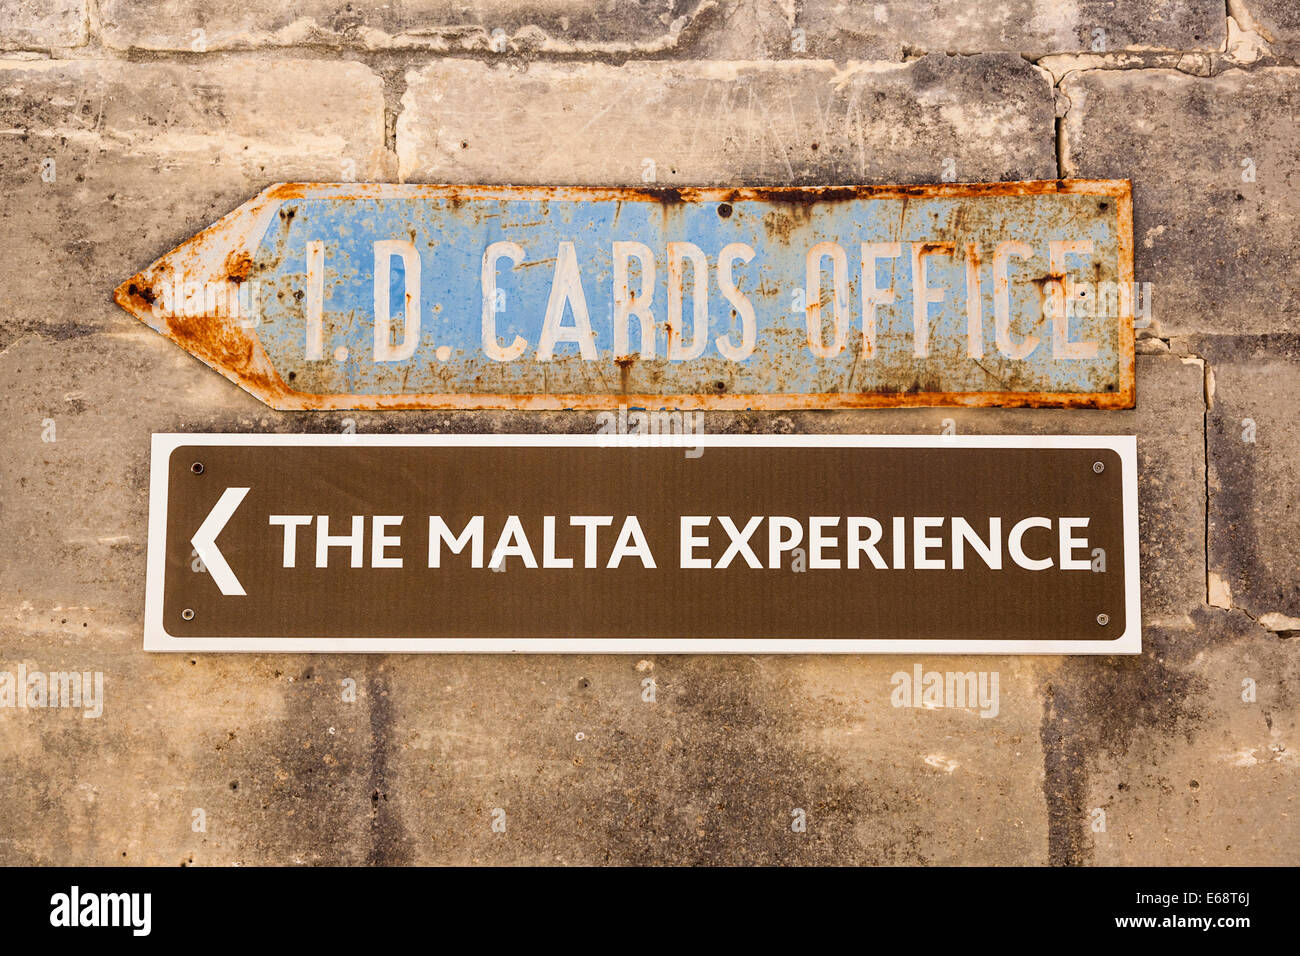 An old ID cards office sign from World War II on a Maltese wall above another sign for the Malta Experience, Malta. - Stock Image